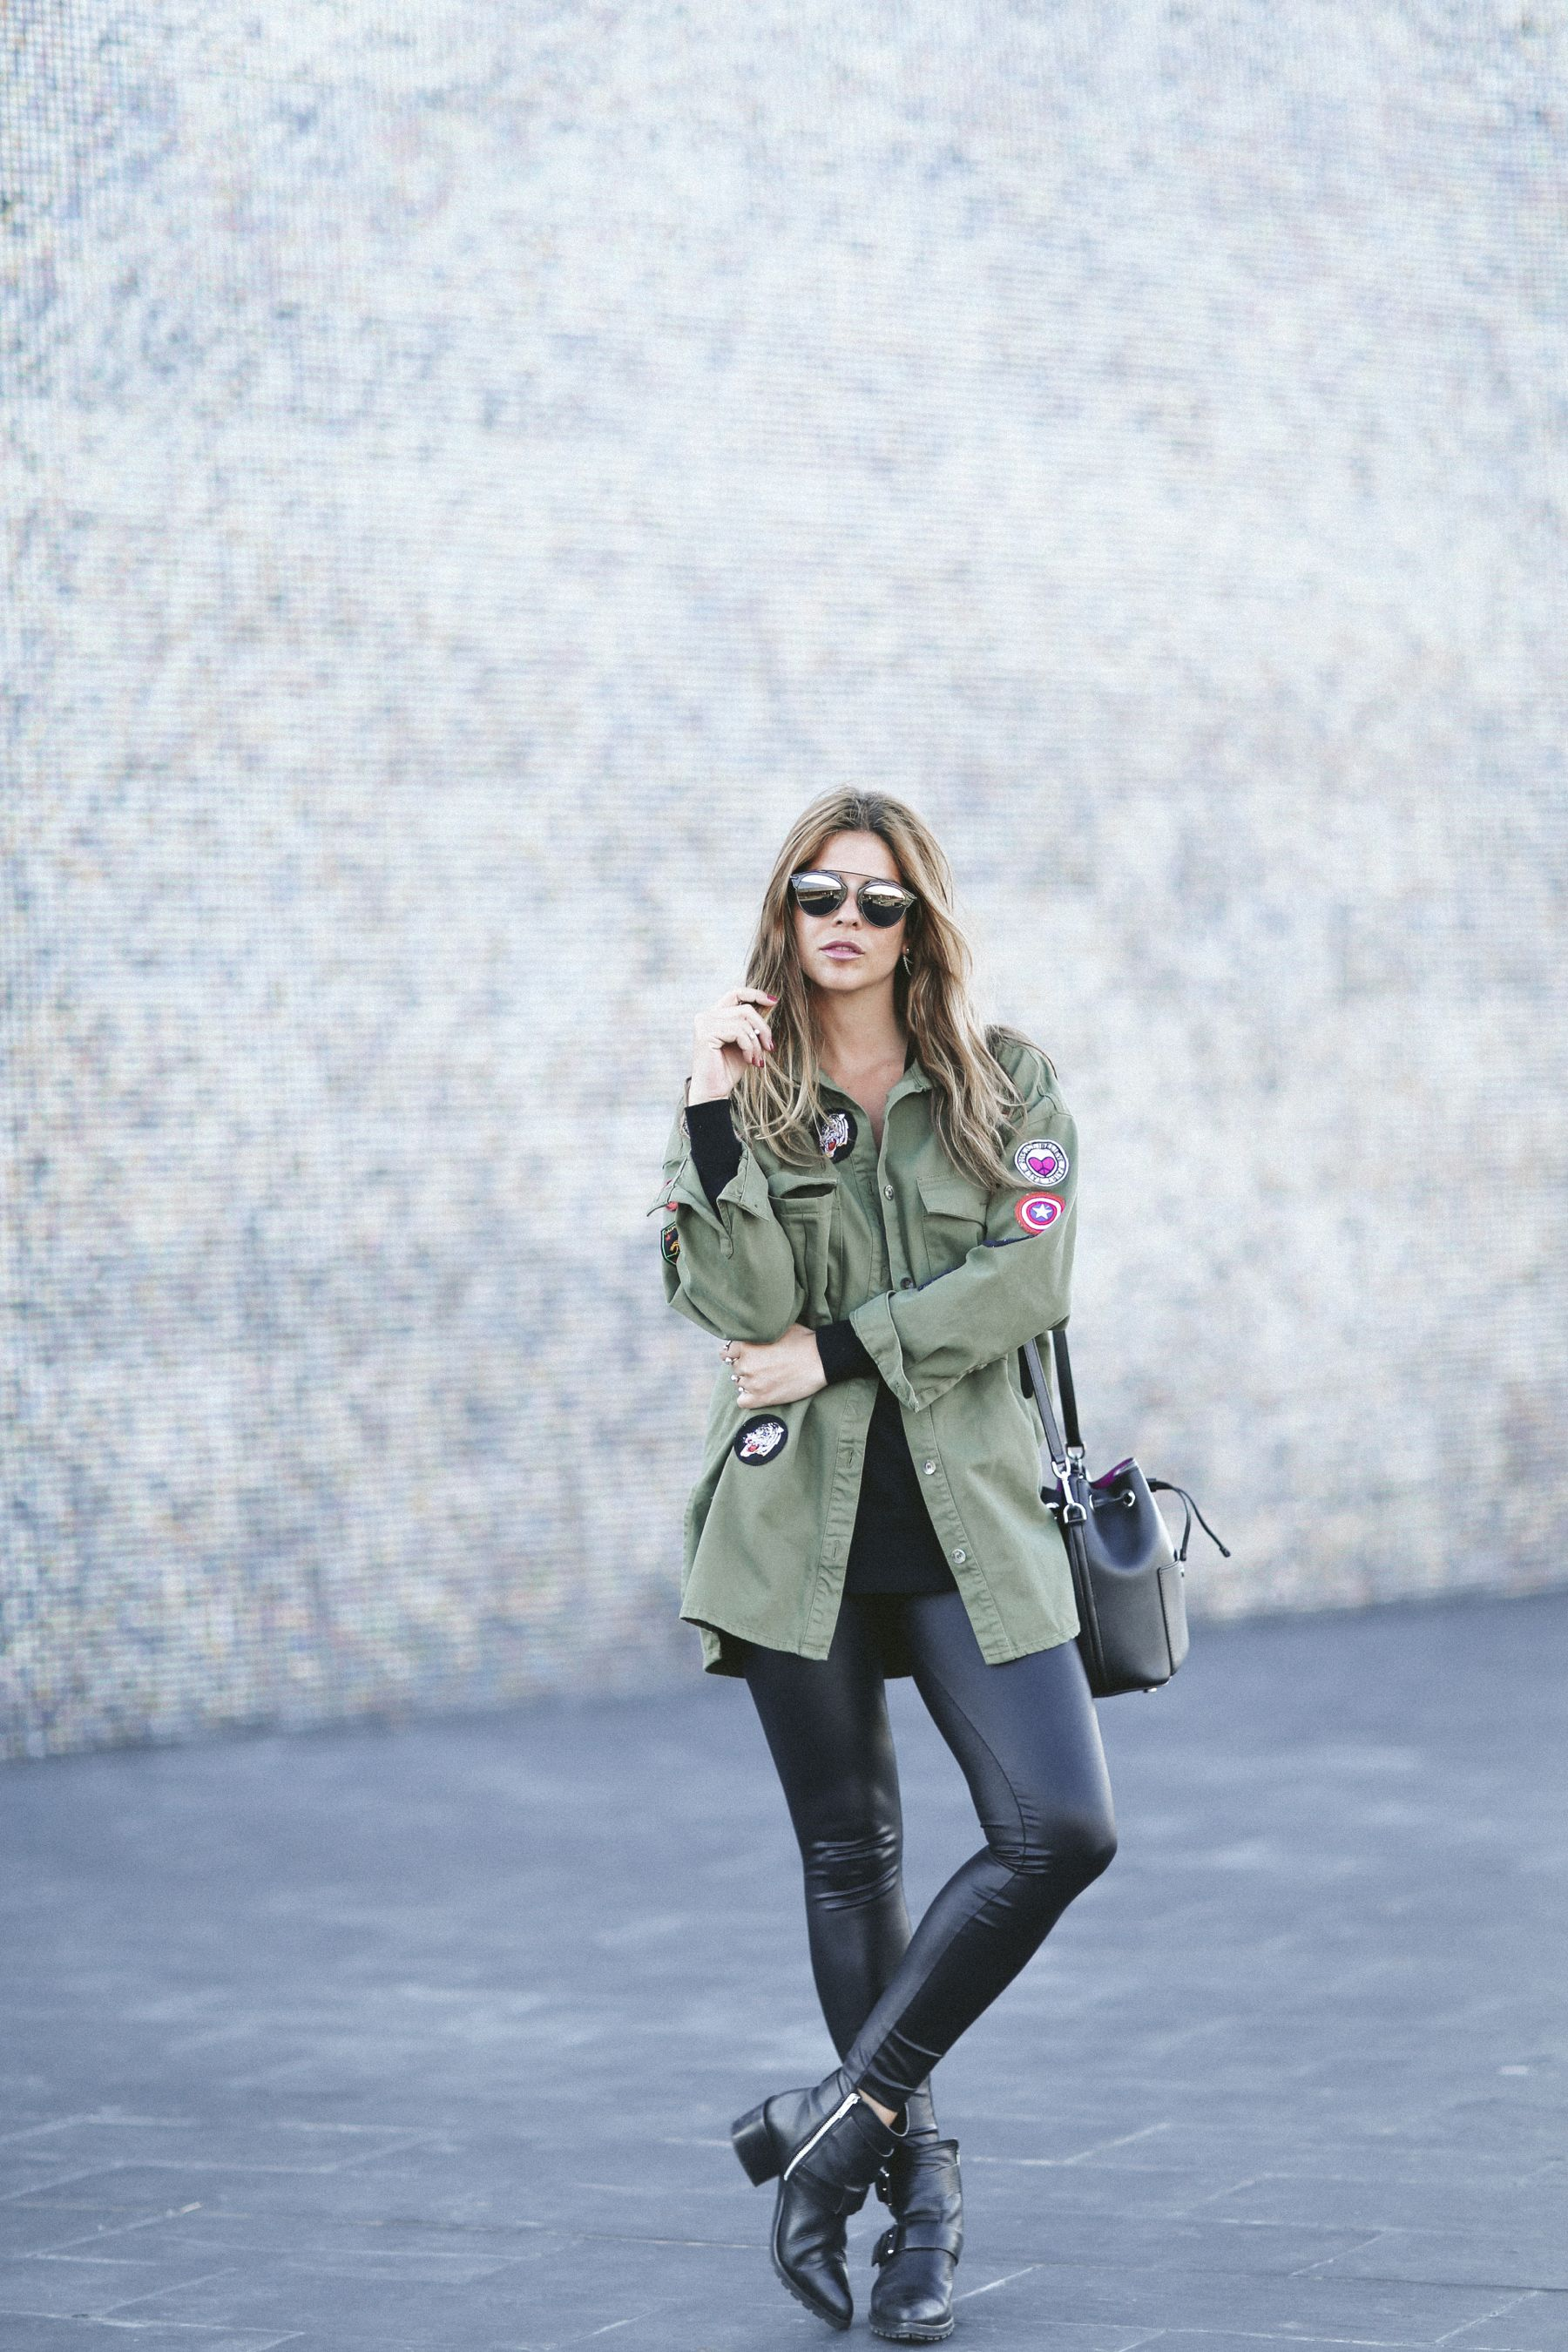 botas boots outfit look primavera spring camisa mango cuero leather leggings boyfriend oversize  Rayban gafas de sol sunglasses street style trendy taste bolso bag michael kors pull and bear parka zara jersey sweater_4